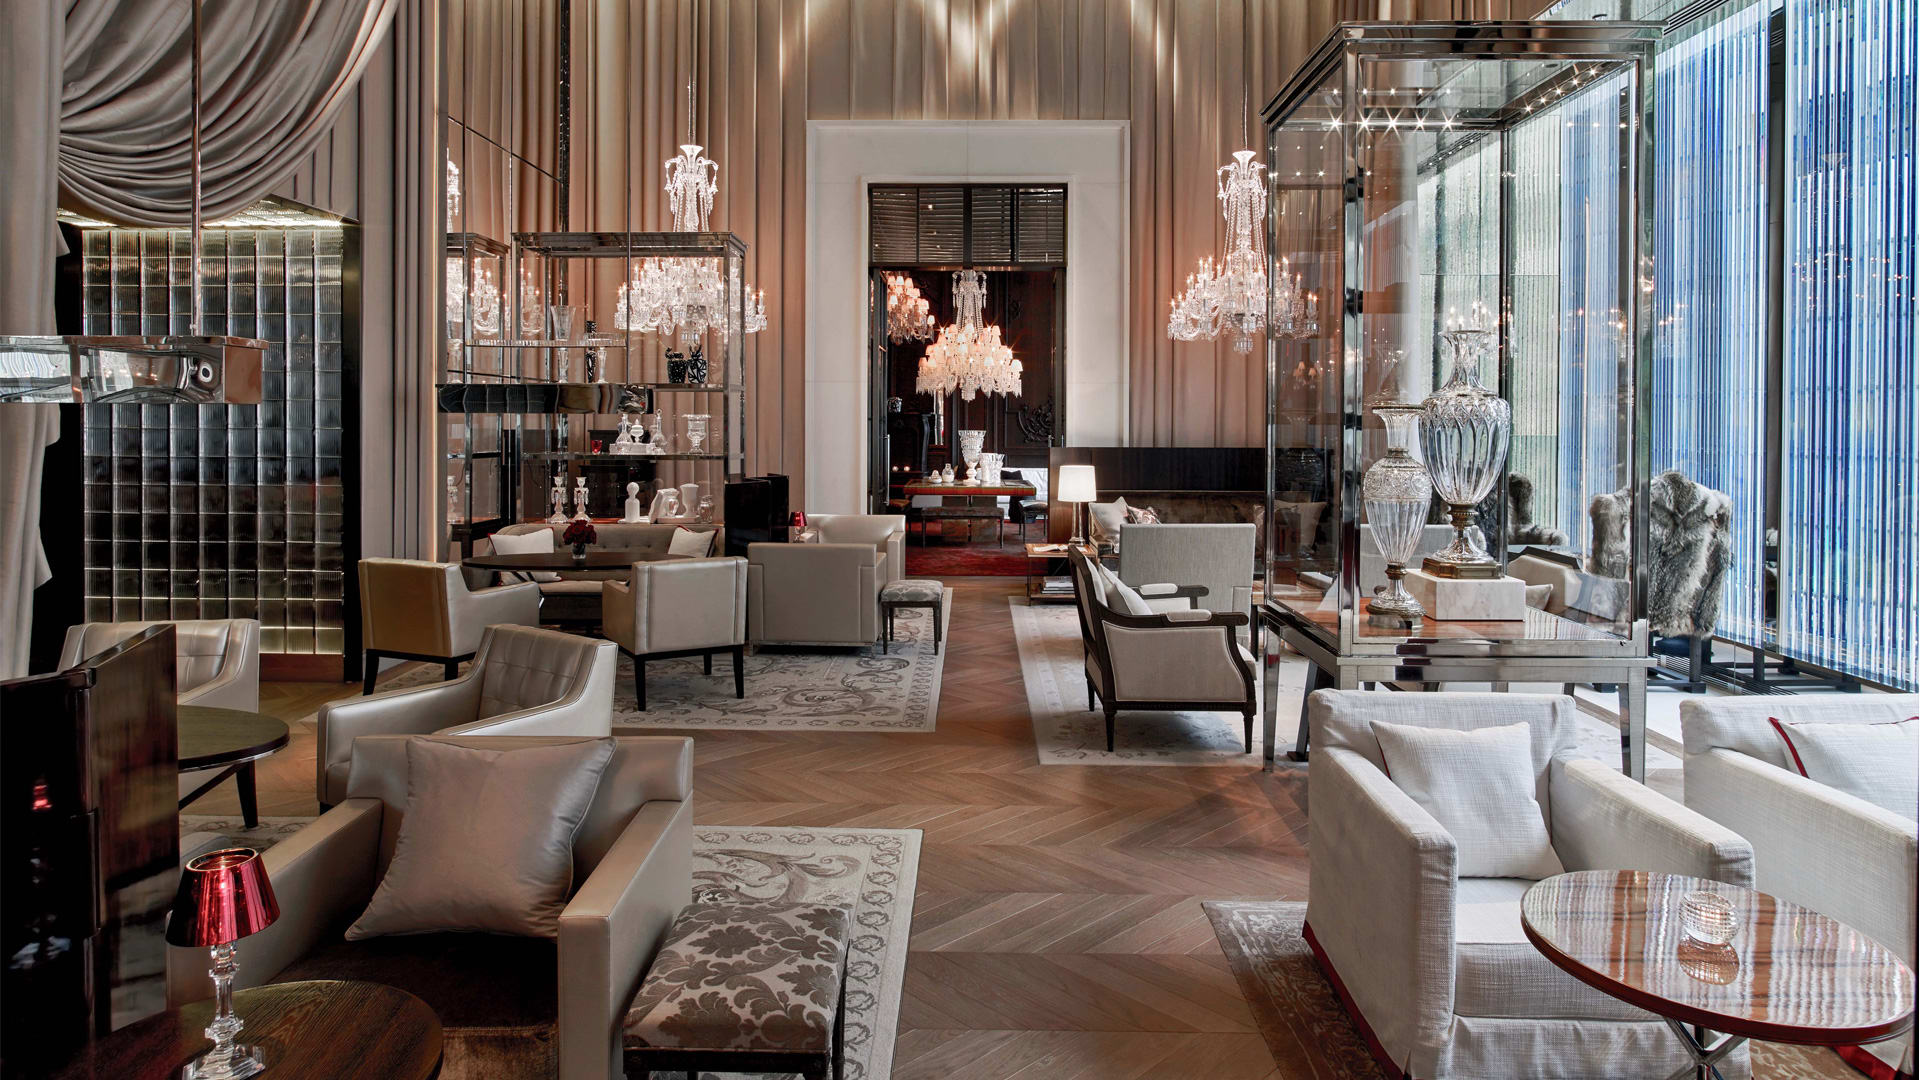 Getting to Know: The Baccarat Hotel